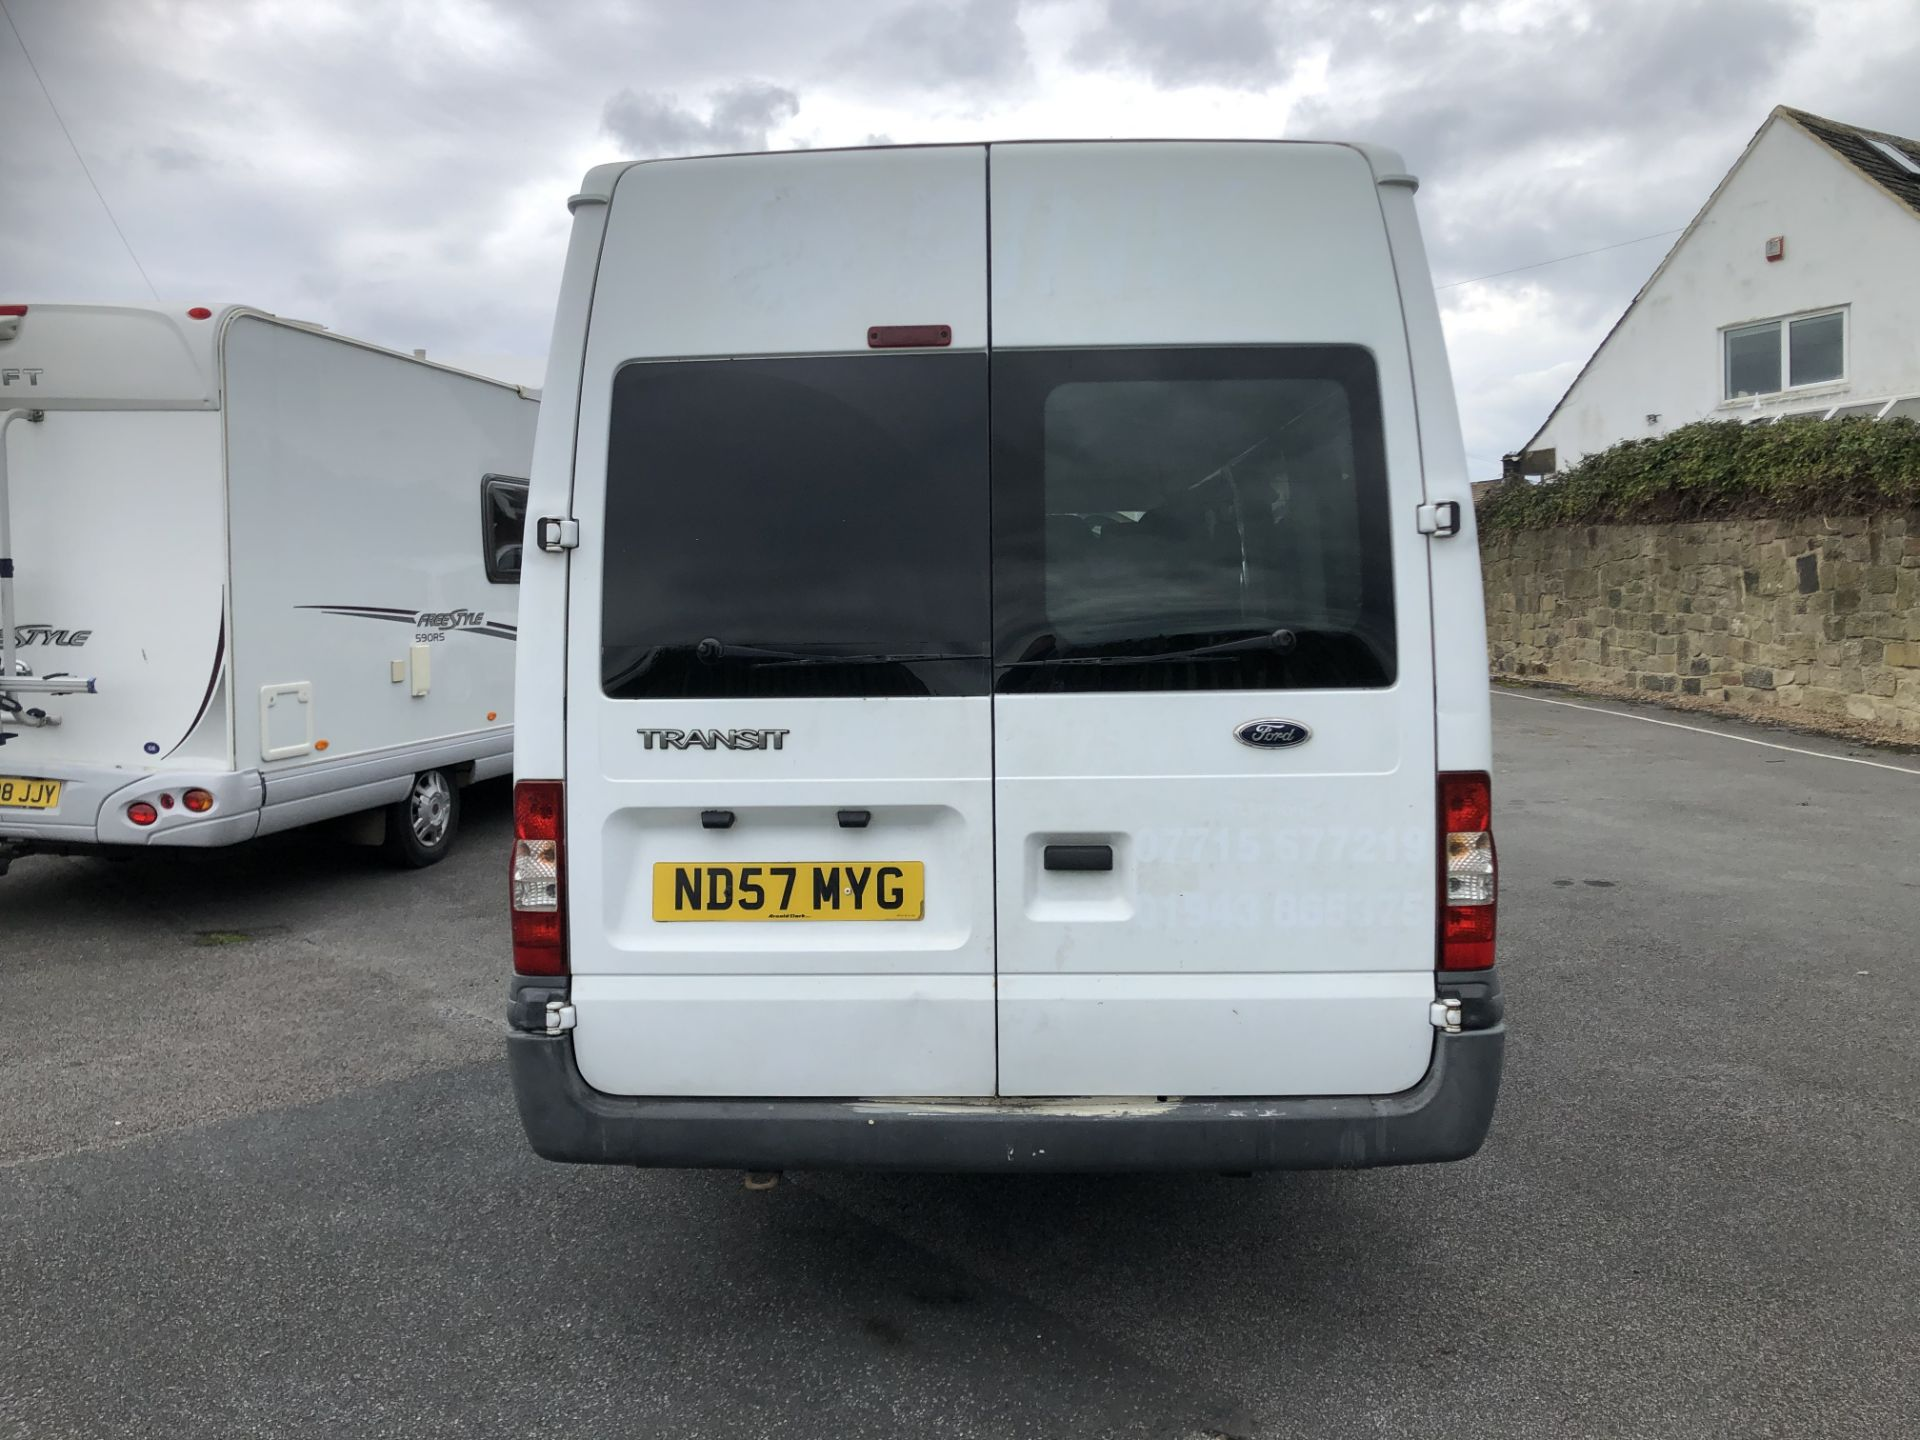 Lot 104 - 2008/57 REG FORD TRANSIT 100 8 SEATER RWD WHITE MINIBUS, SHOWING 2 FORMER KEEPERS *NO VAT*